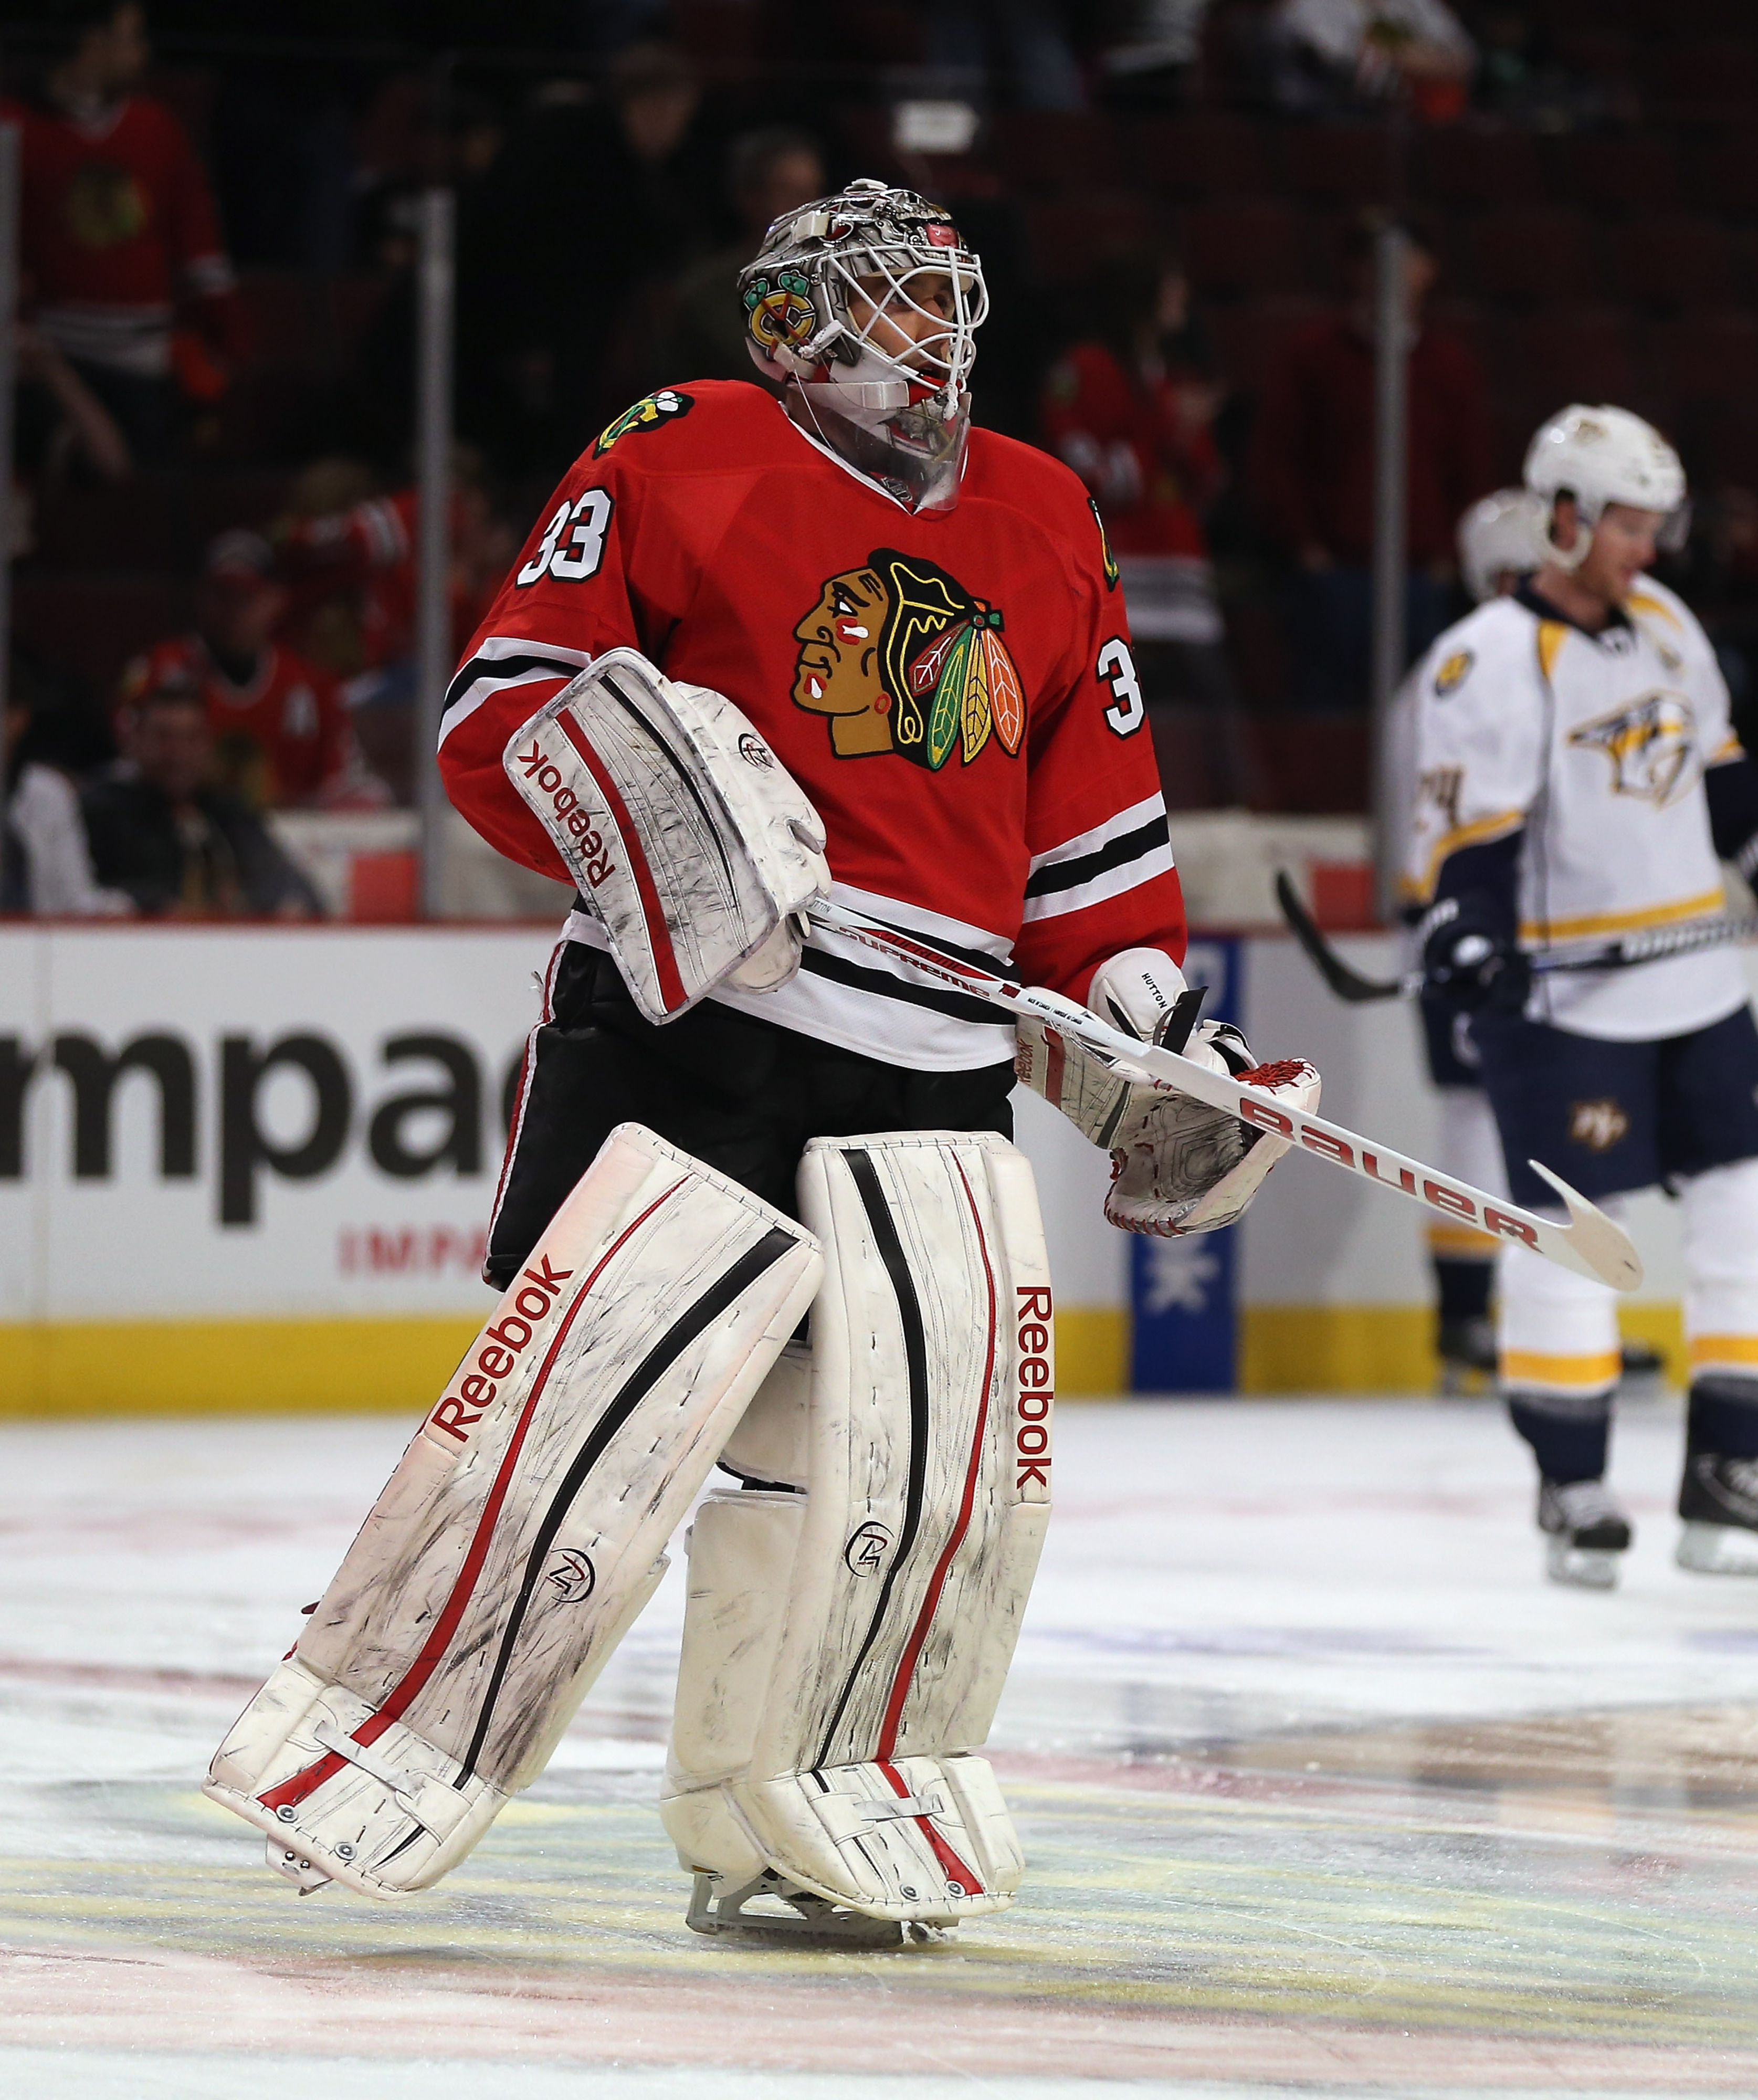 Hutton's move from Chicago to Nashville gives him an immediate chance for NHL action.